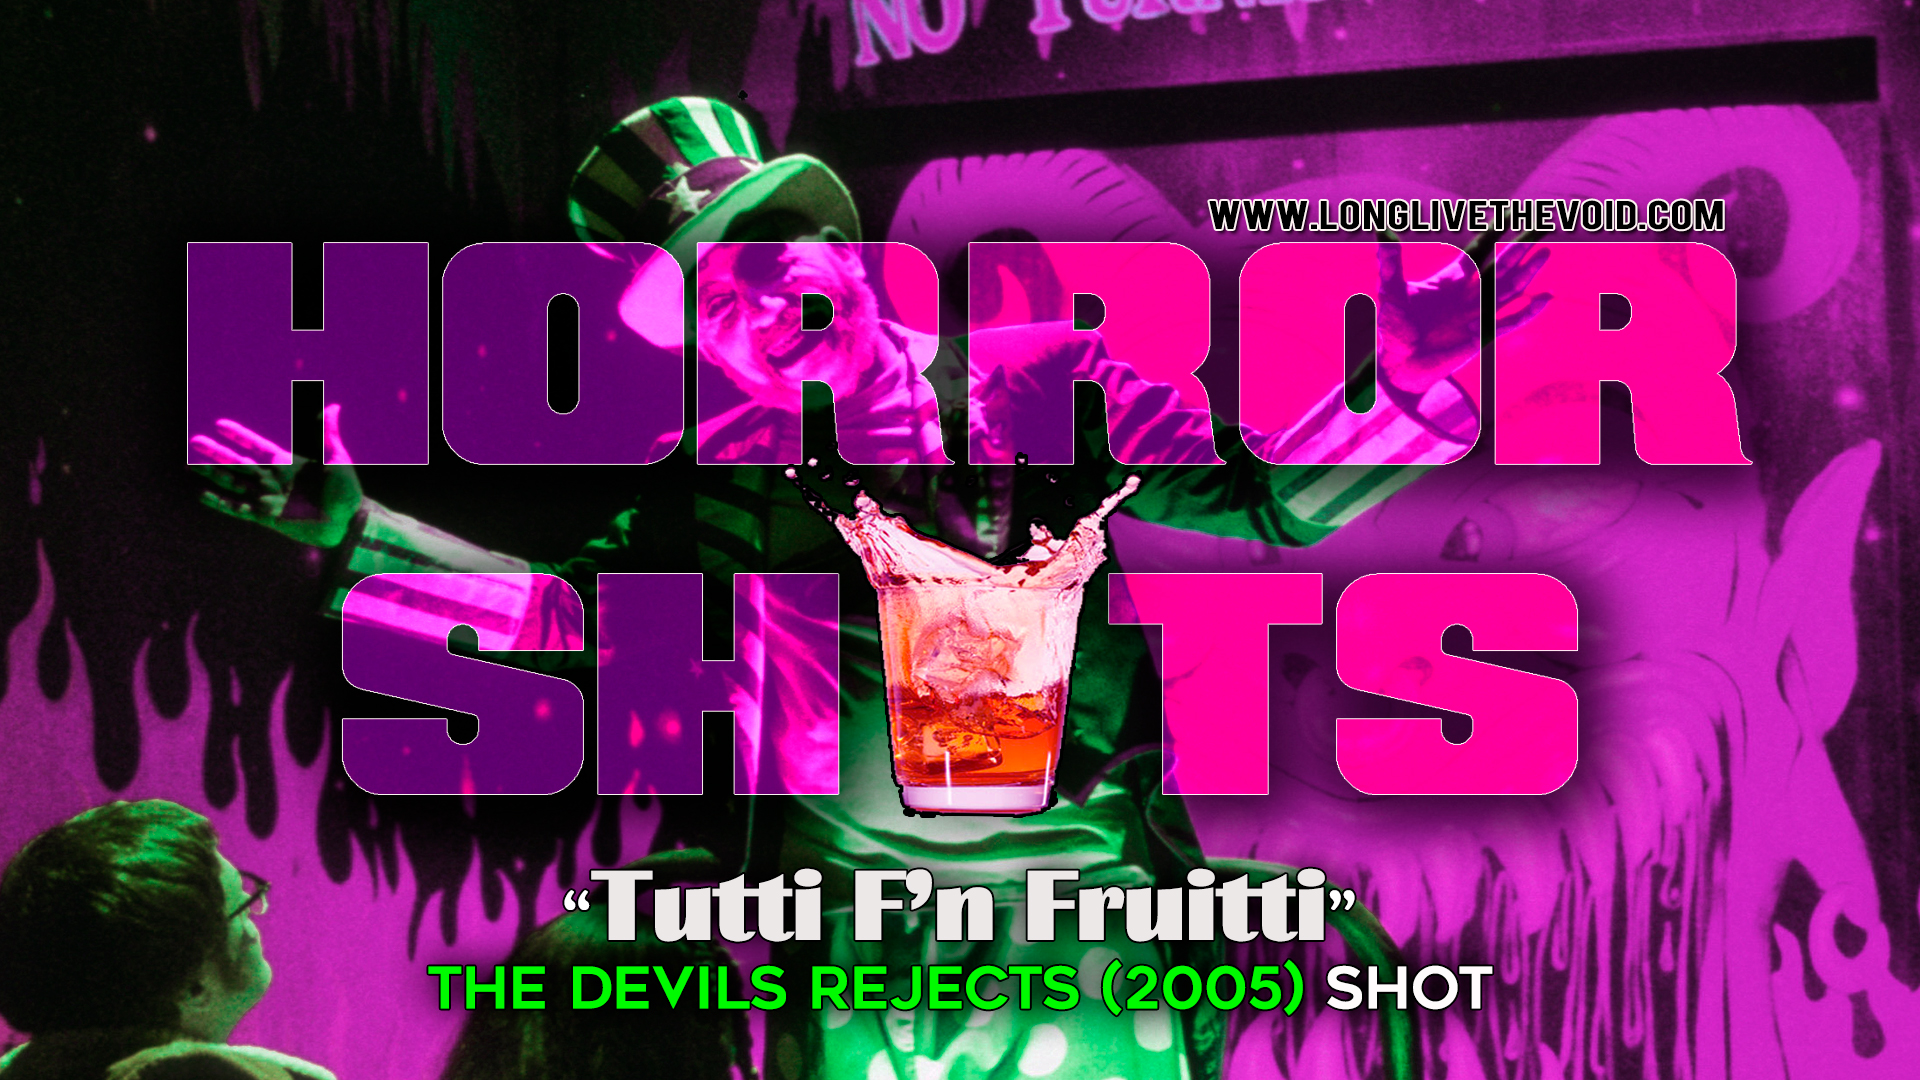 Tutti Fn Fruitti The Devils Rejects 2005 Shot Beyond